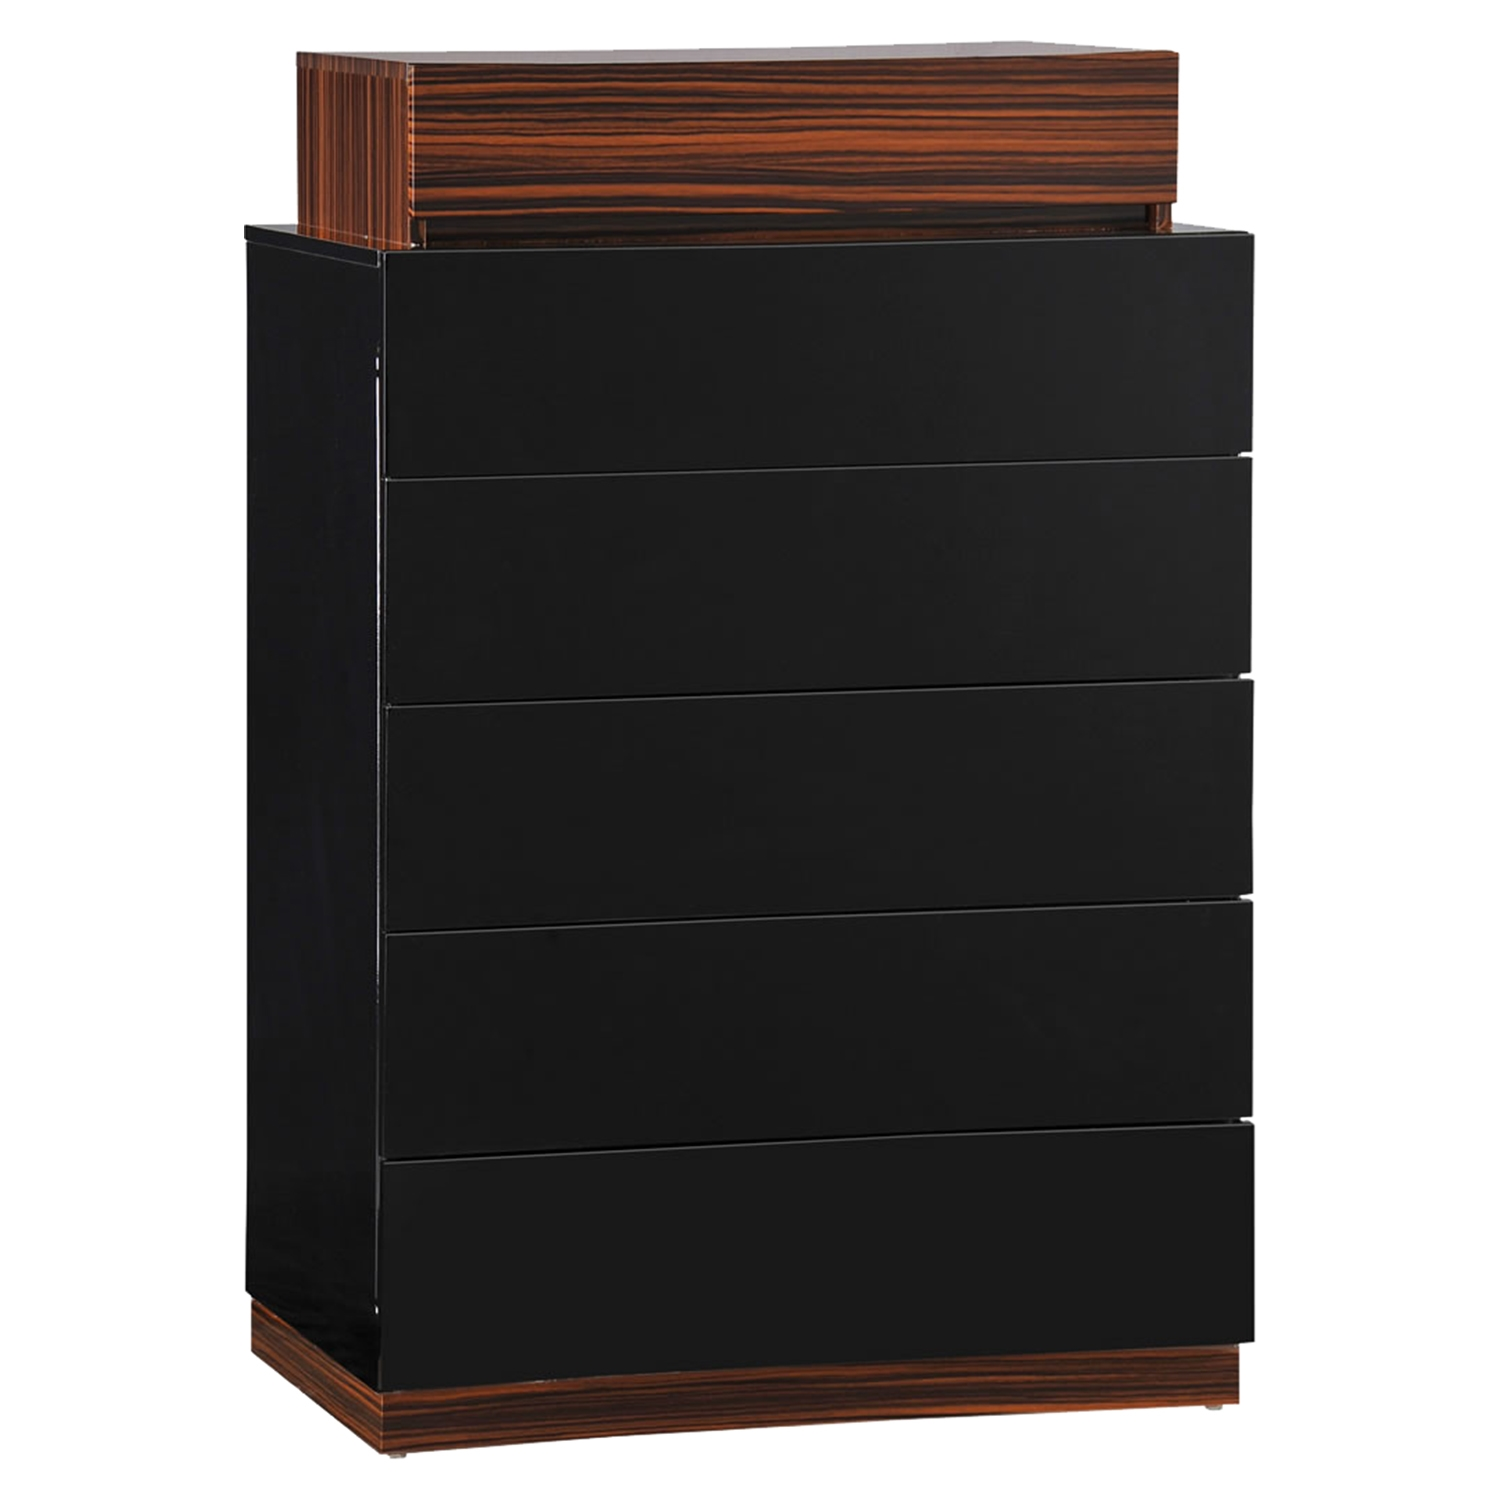 Lexi Chest - High Gloss Black/Zebra Walnut